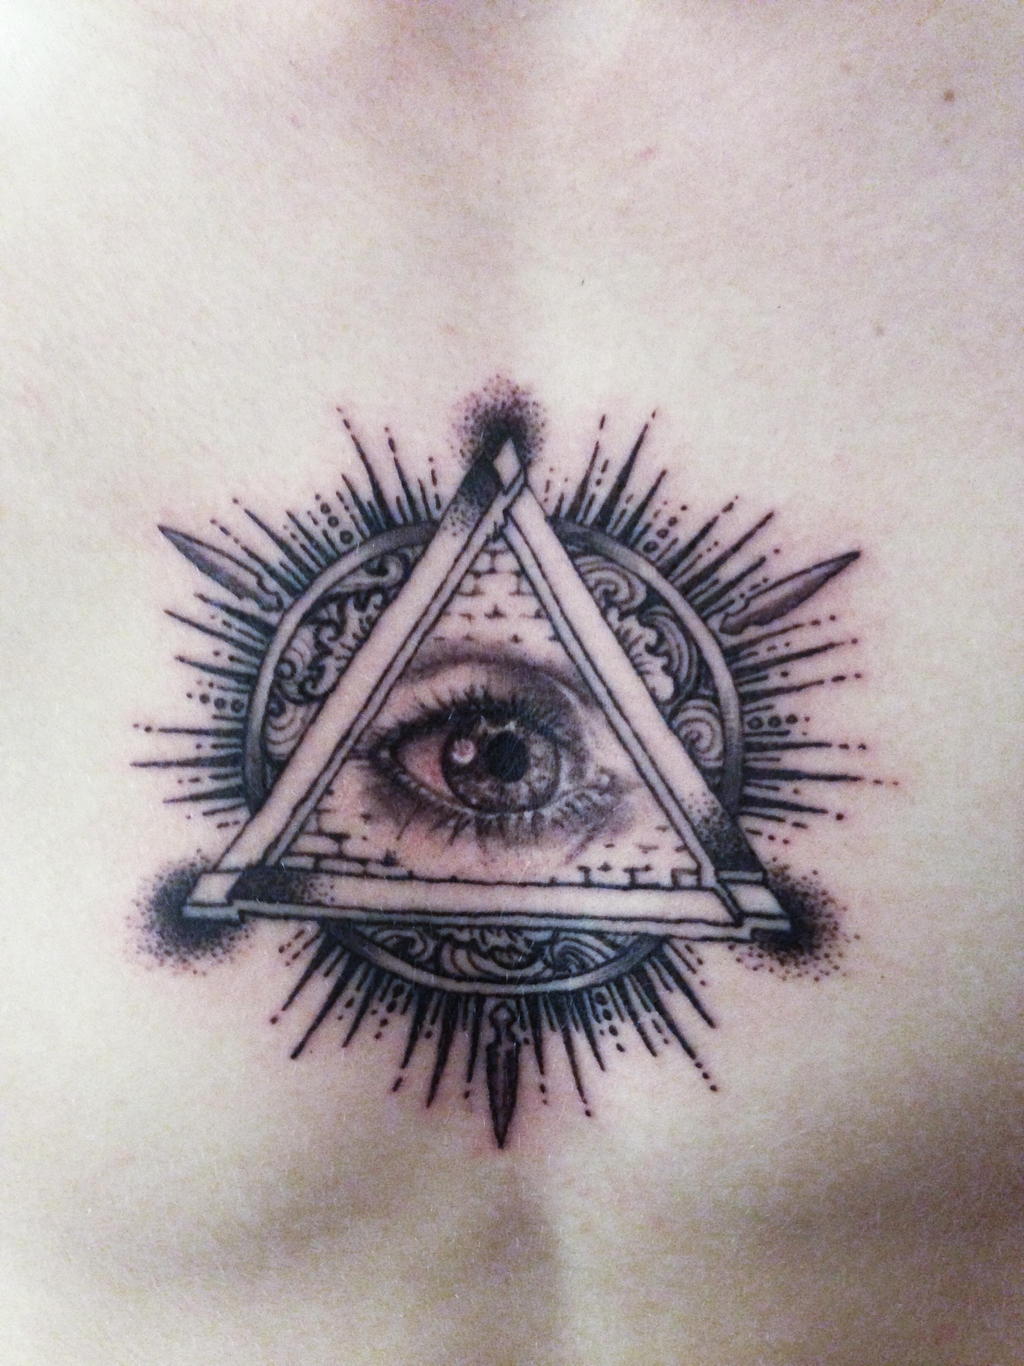 Tattoo Ideas – All Seeing Eye Tattoos